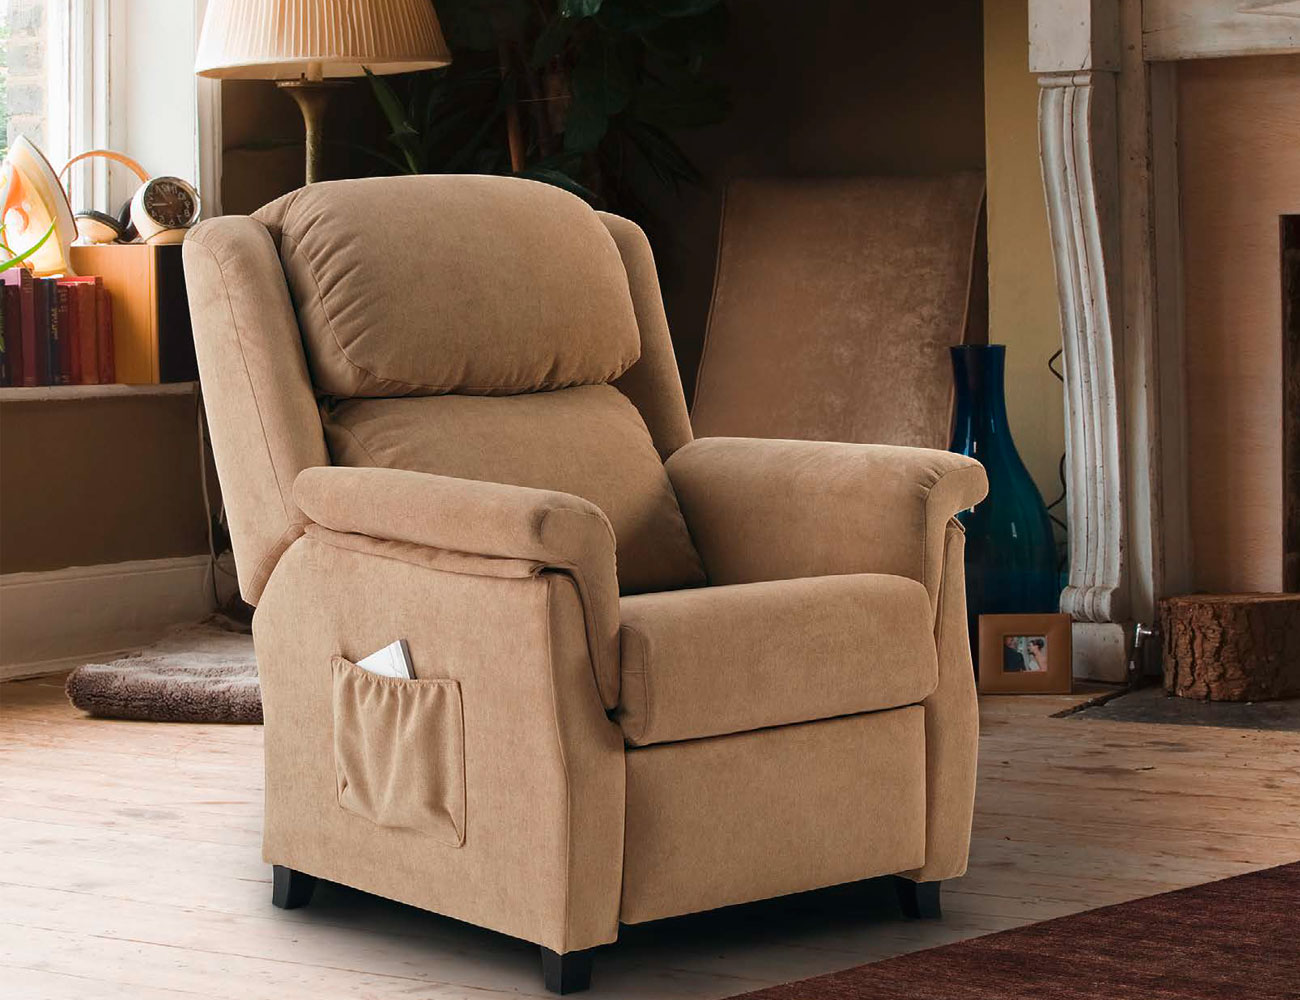 Sillon relax manual bianca 110